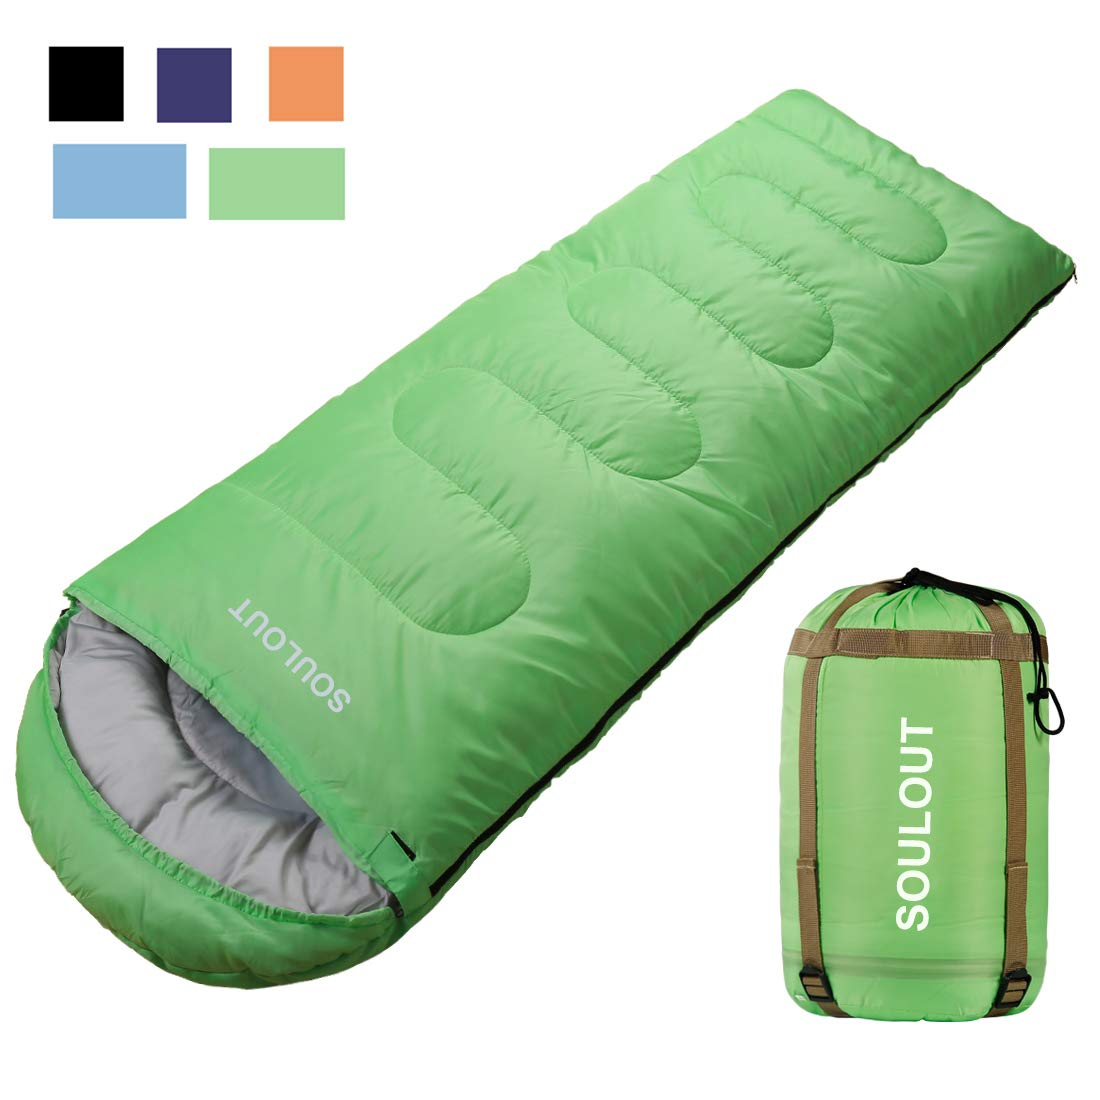 Envelope Sleeping Bag - 4 Seasons Warm Cold Weather Lightweight, Portable, Waterproof With Compression Sack for Adults & Kids - Indoor & Outdoor Activities: Traveling, Camping, Backpacking, Hiking by SOULOUT